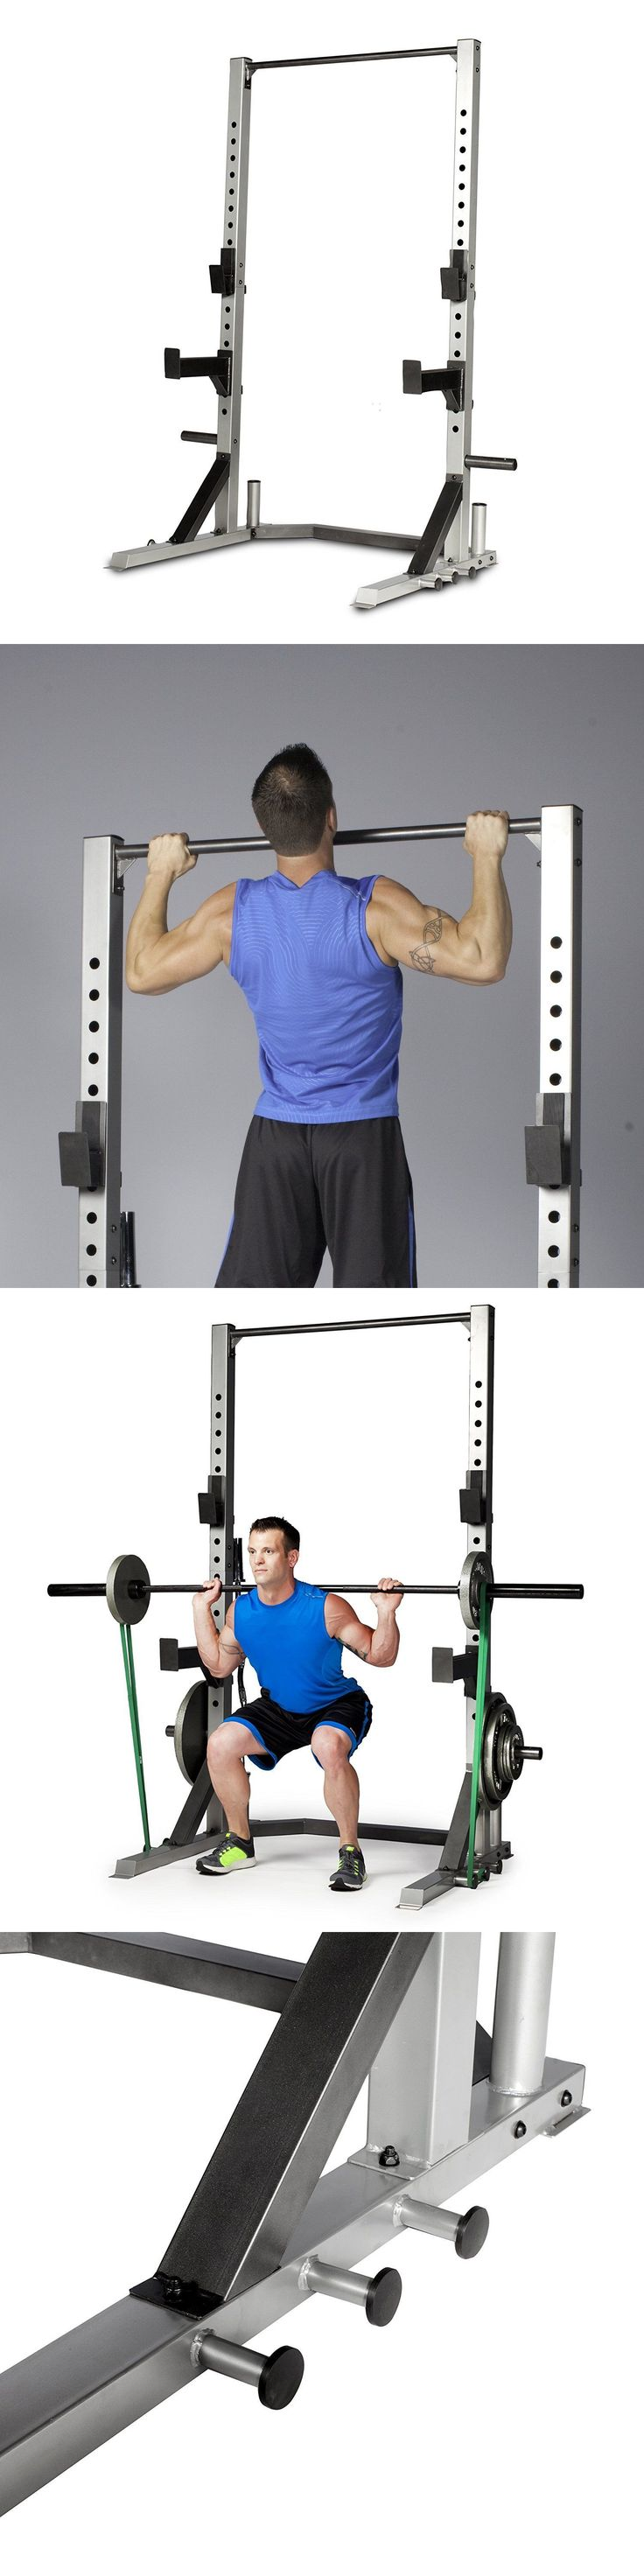 Power Racks and Smith Machines 179815: Strength Power Lifting Rack Weight Stand Squat Fitness Pull Up Bench Press Cage -> BUY IT NOW ONLY: $273.1 on eBay!